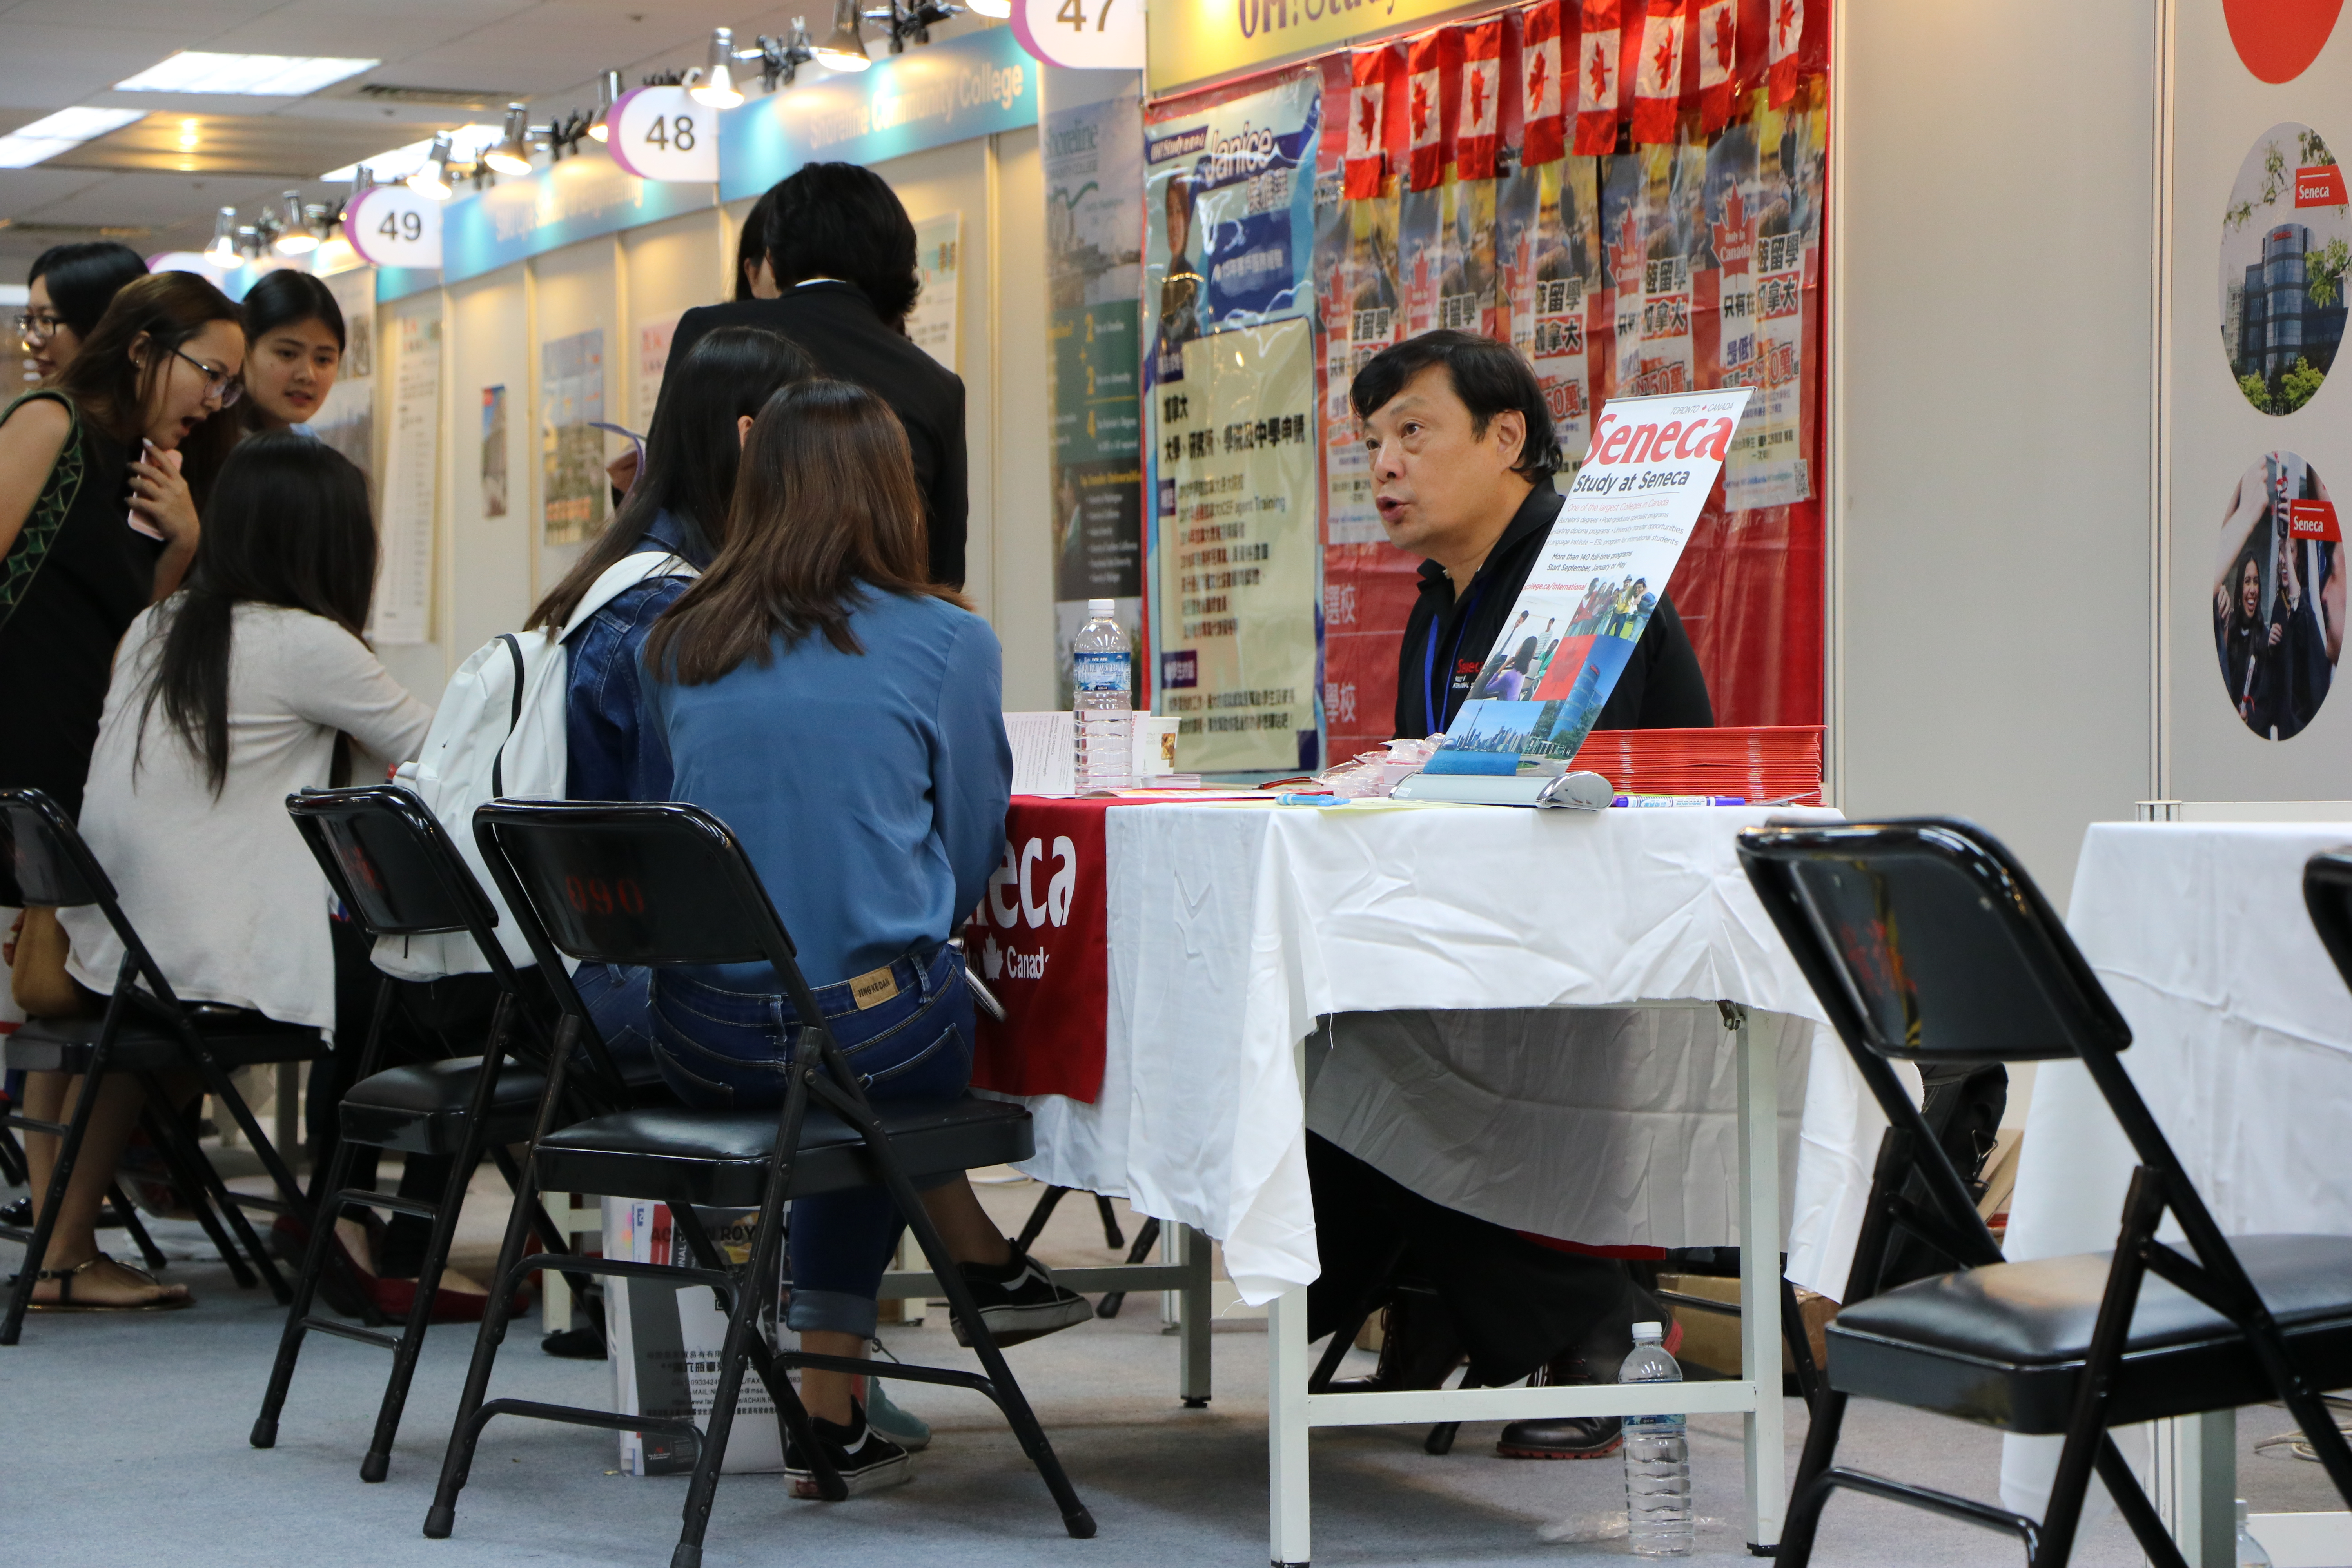 Photo/ Tsou, Fang-ting People are consulting.